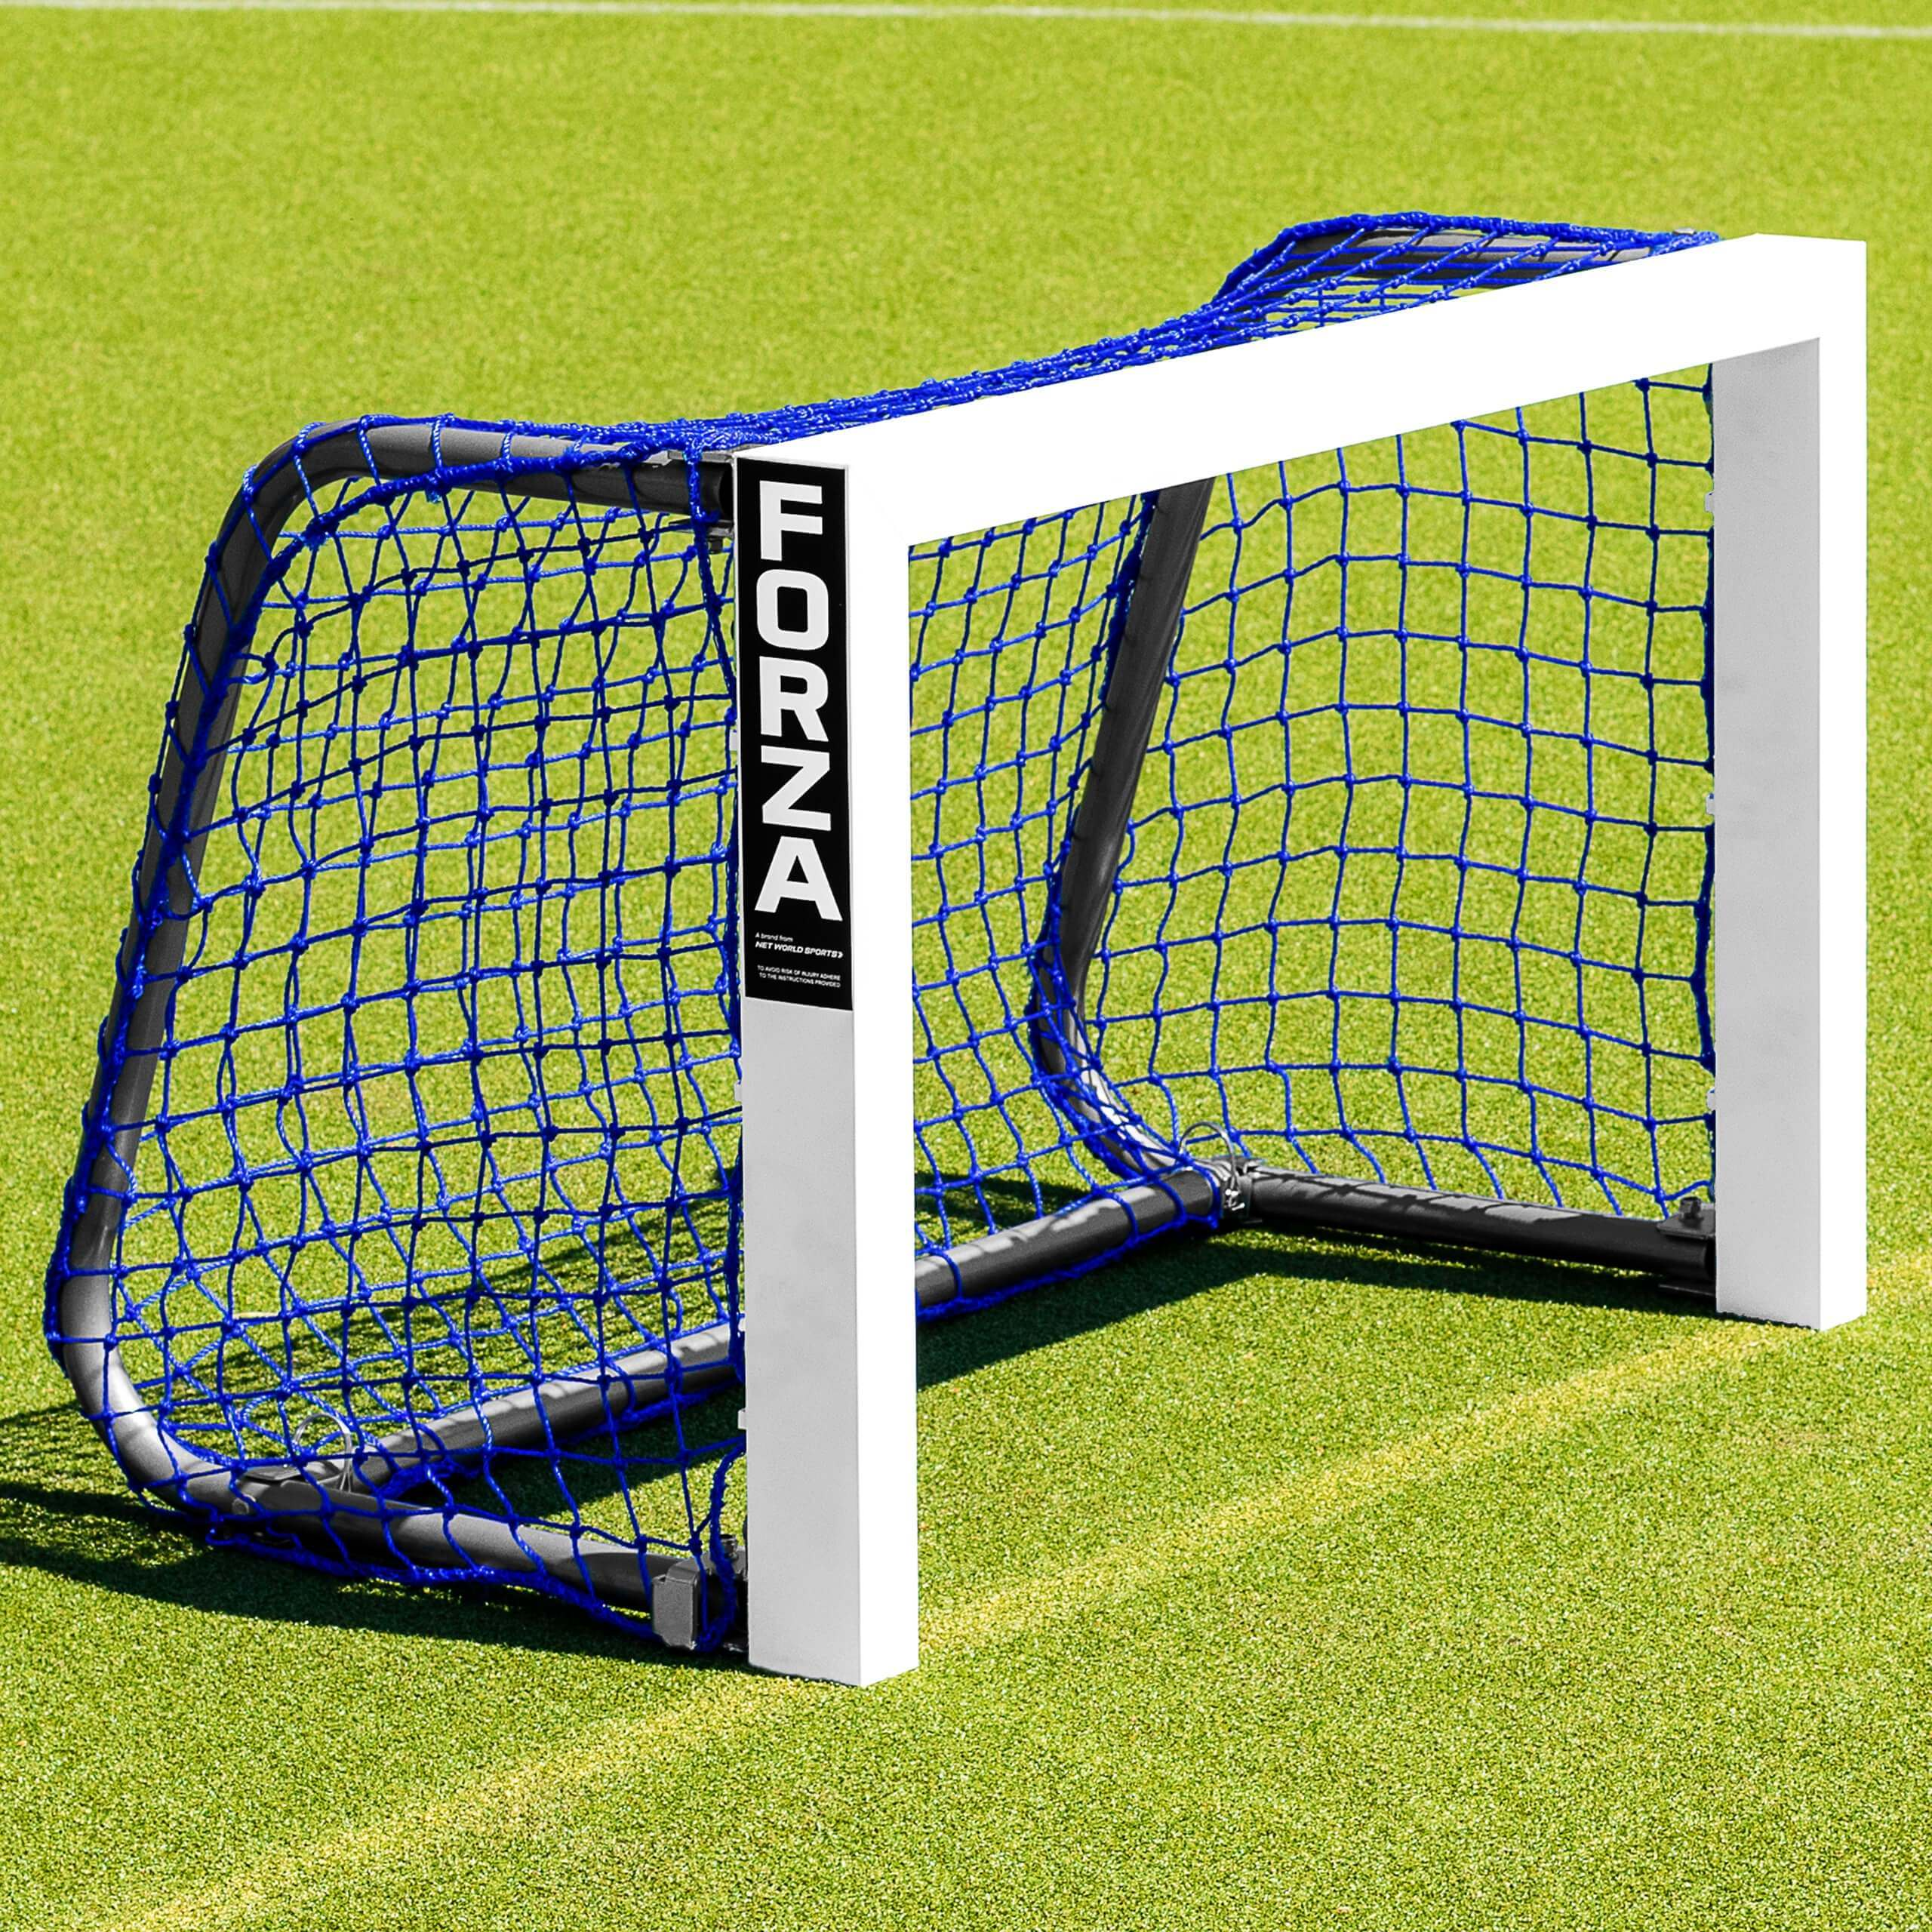 b82b5074a FORZA Mini Hockey Target Goal | Net World Sports